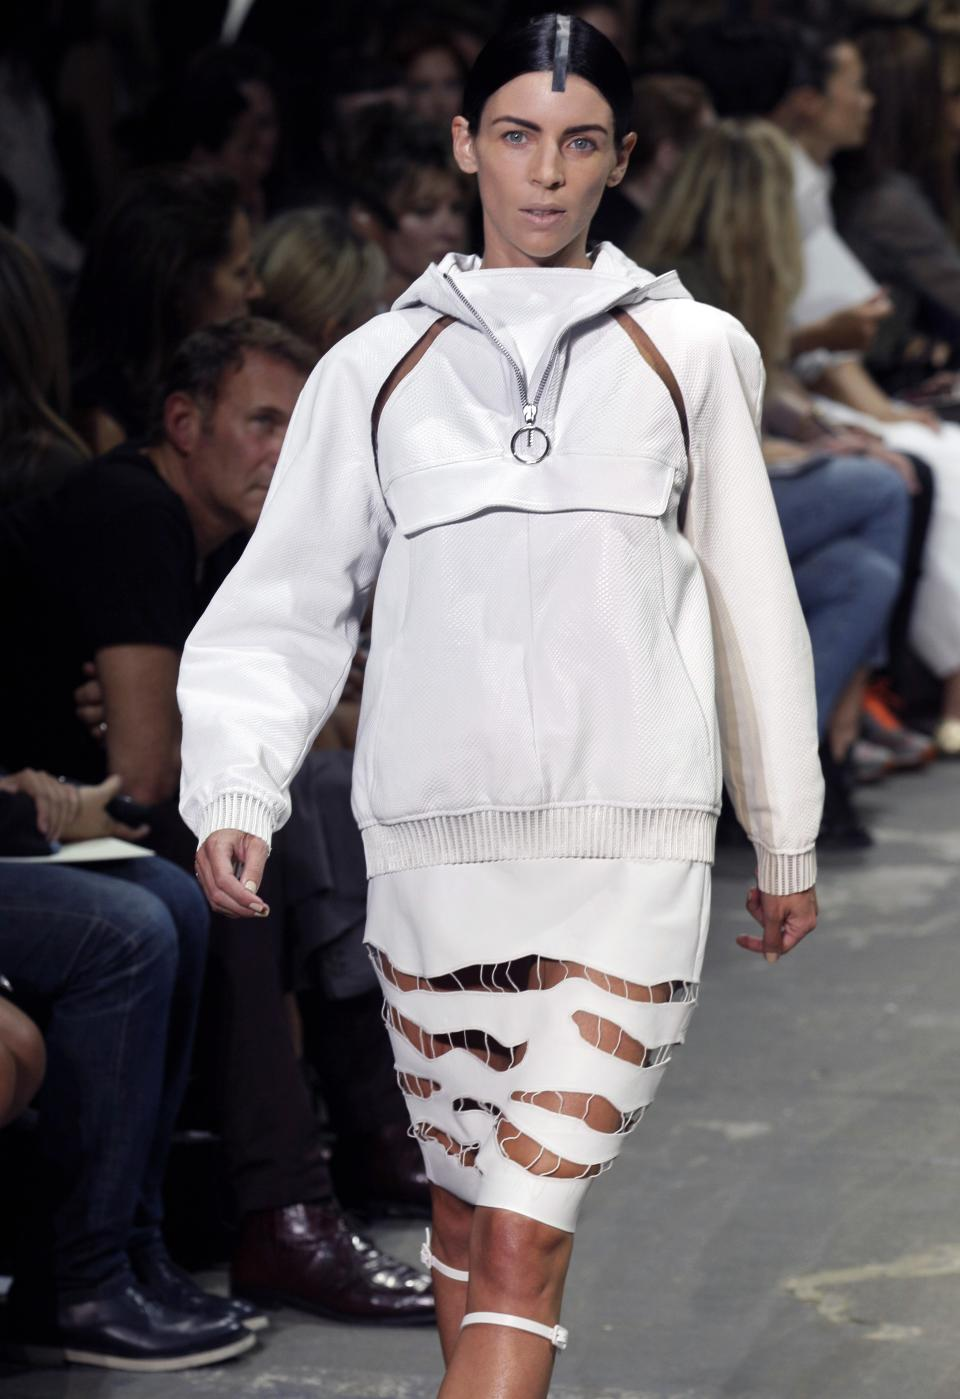 Liberty Ross models the Alexander Wang Spring 2013 collection  during Fashion Week in New York,  Saturday, Sept. 8, 2012. (AP Photo/Richard Drew)